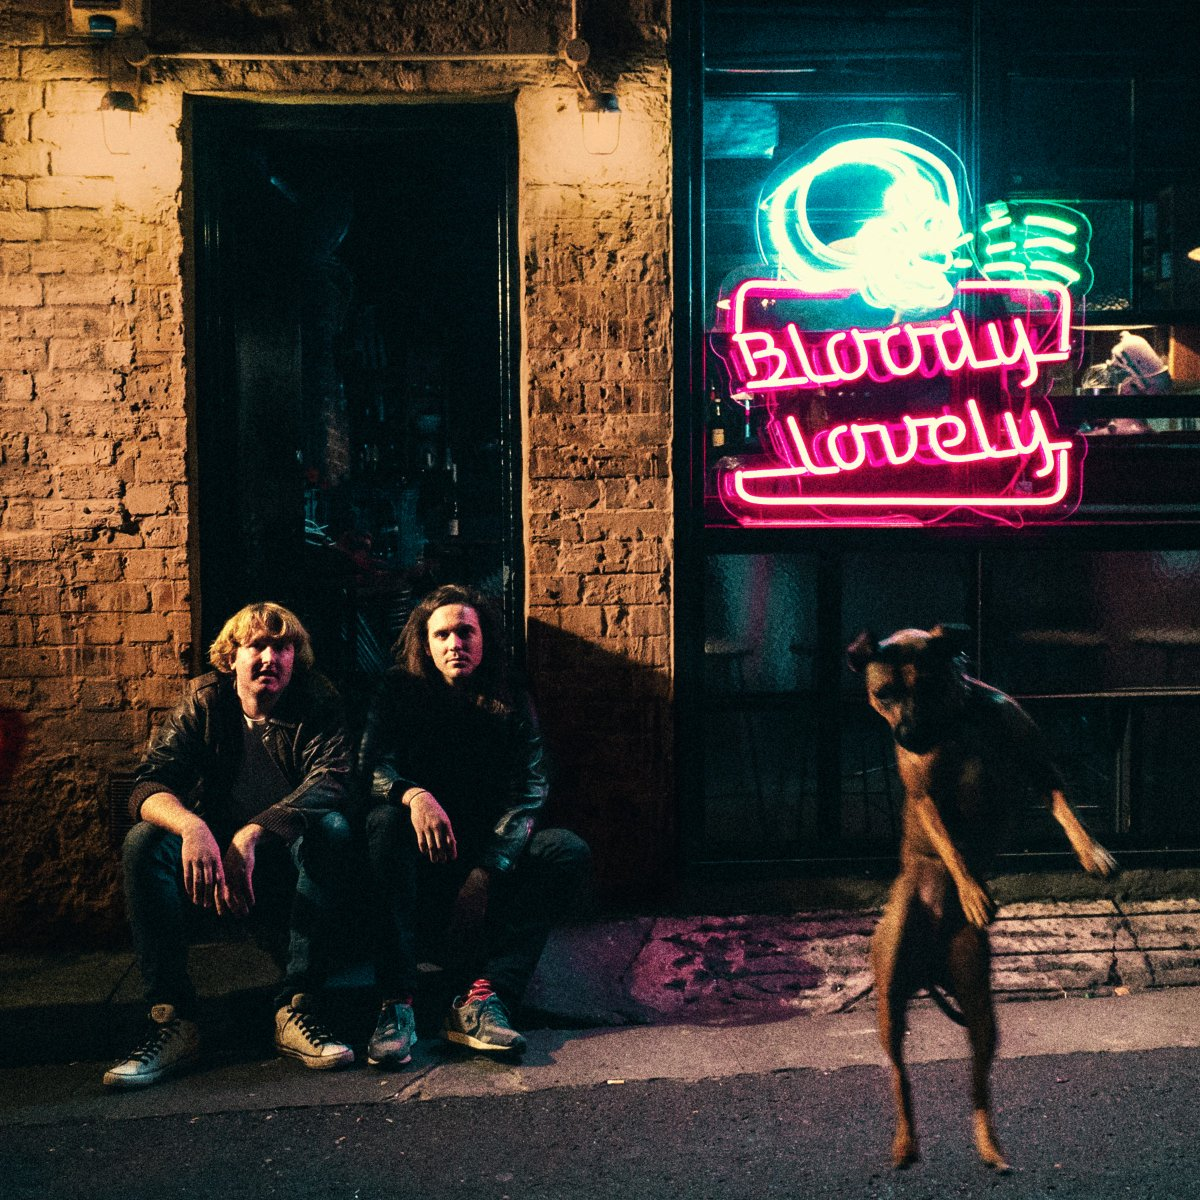 Northern Transmissions' review of 'Bloody Lovely' by DZ Deathrays